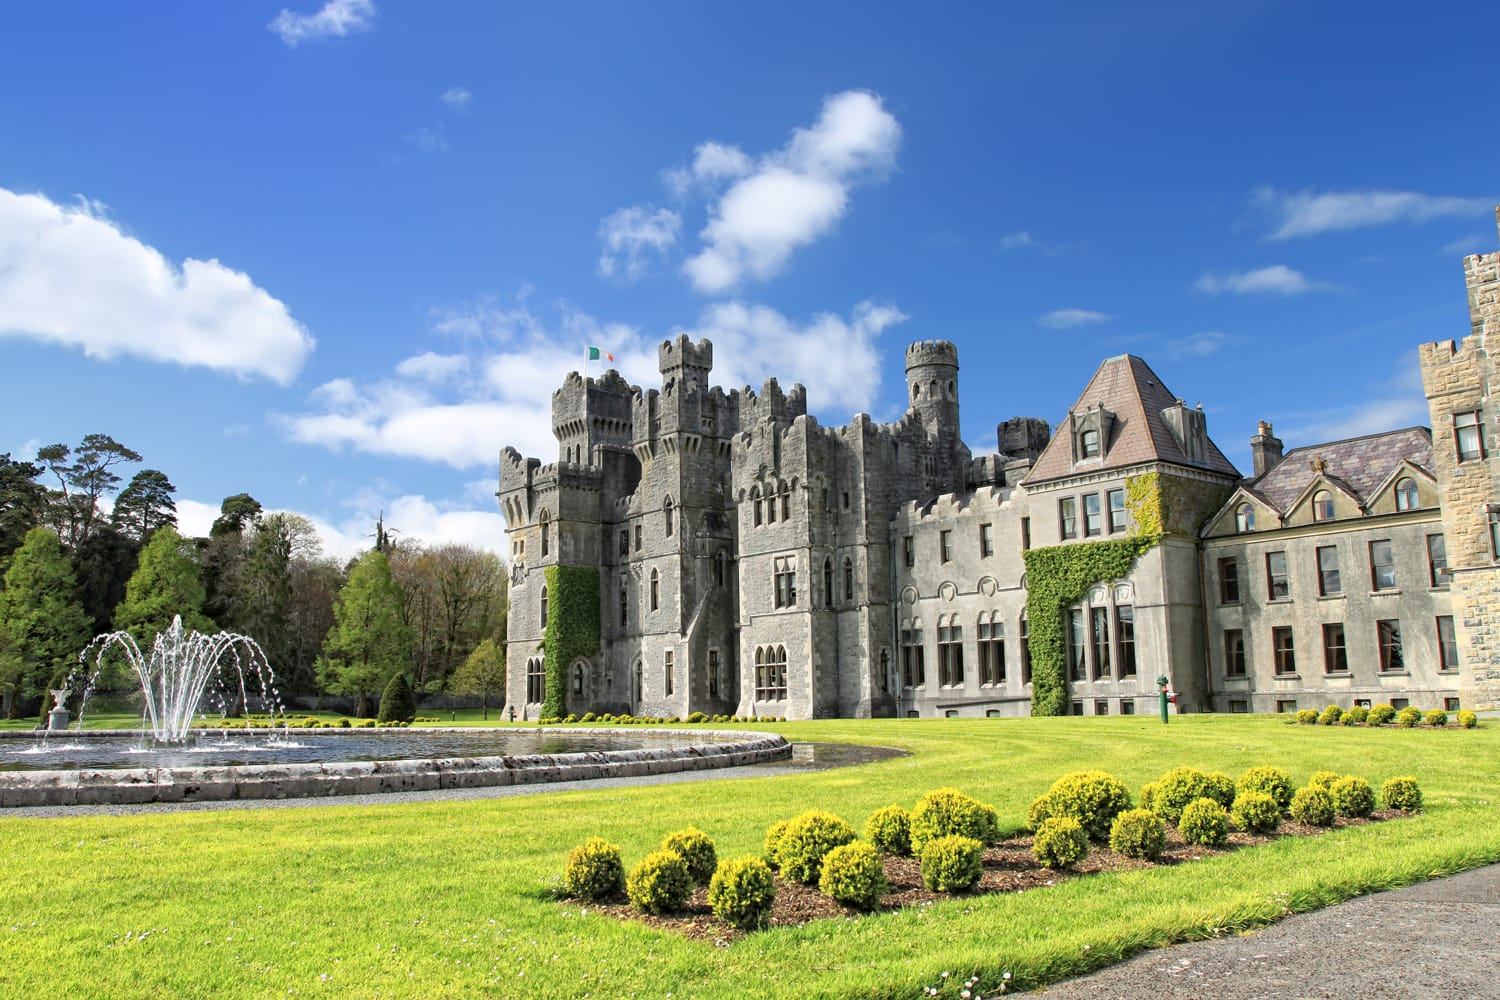 Medieval Ashford castle and gardens in Ireland